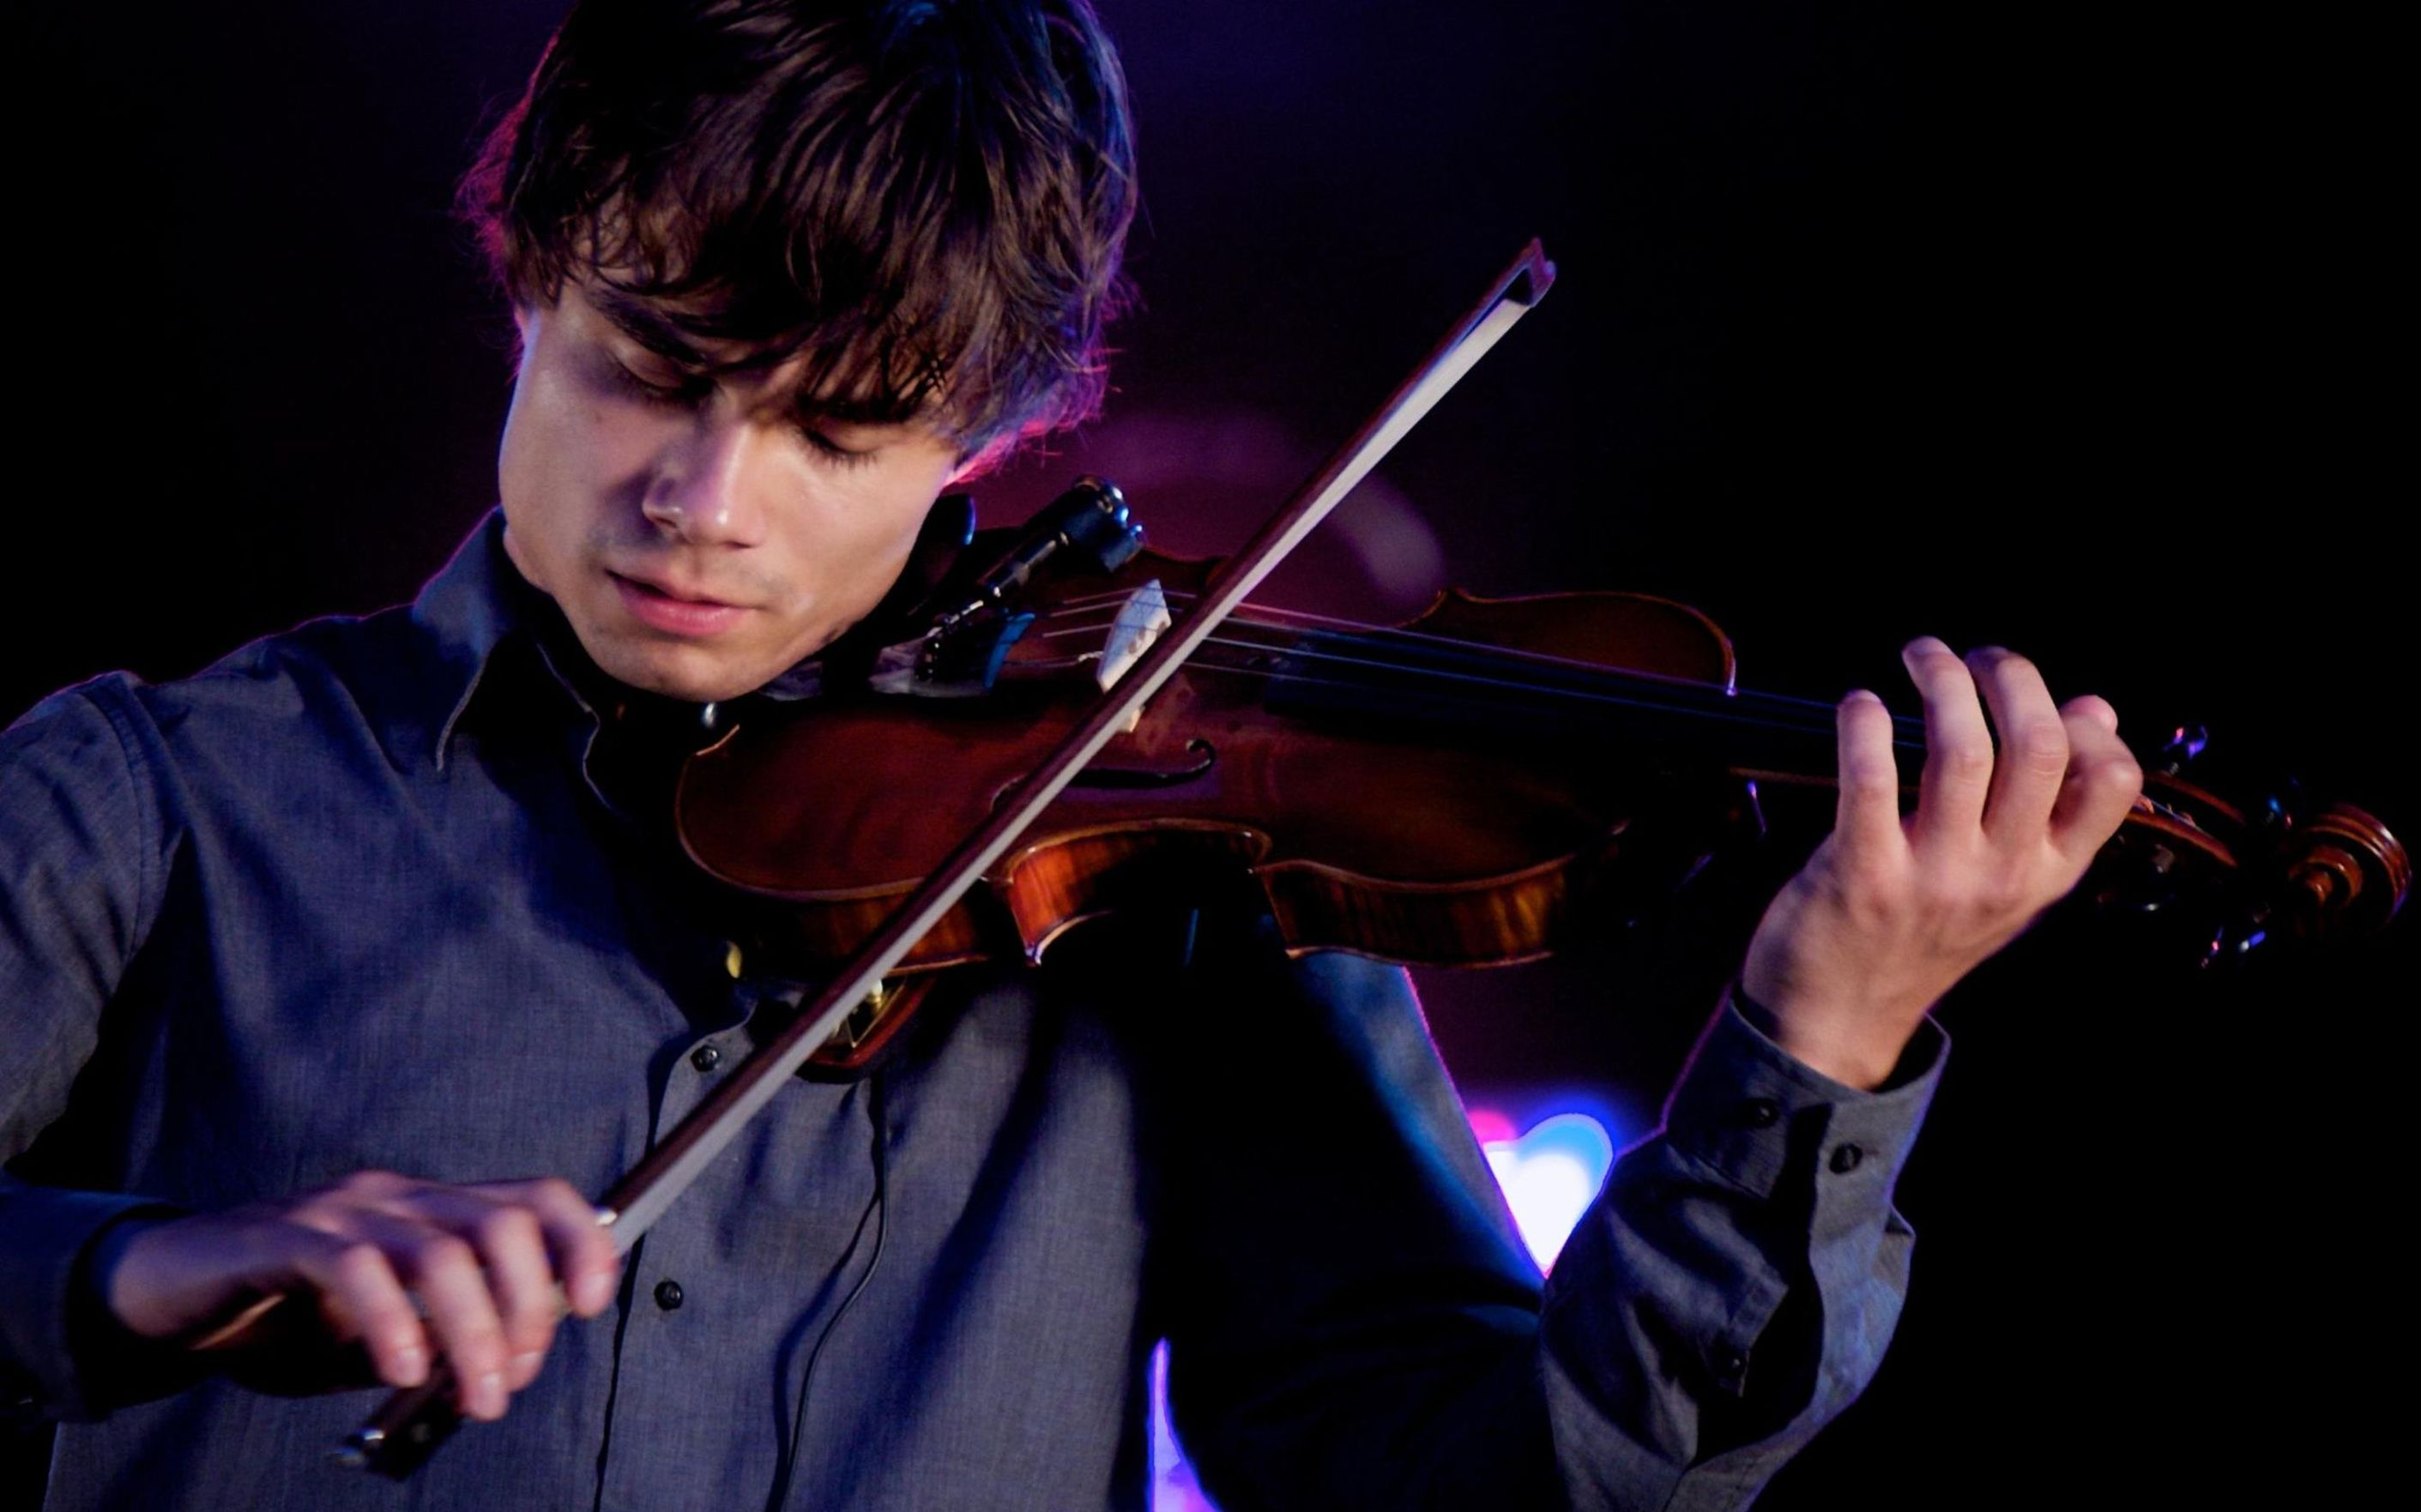 Download free HD Alexander Rybak Singer Violinist Russian Wallpaper, image